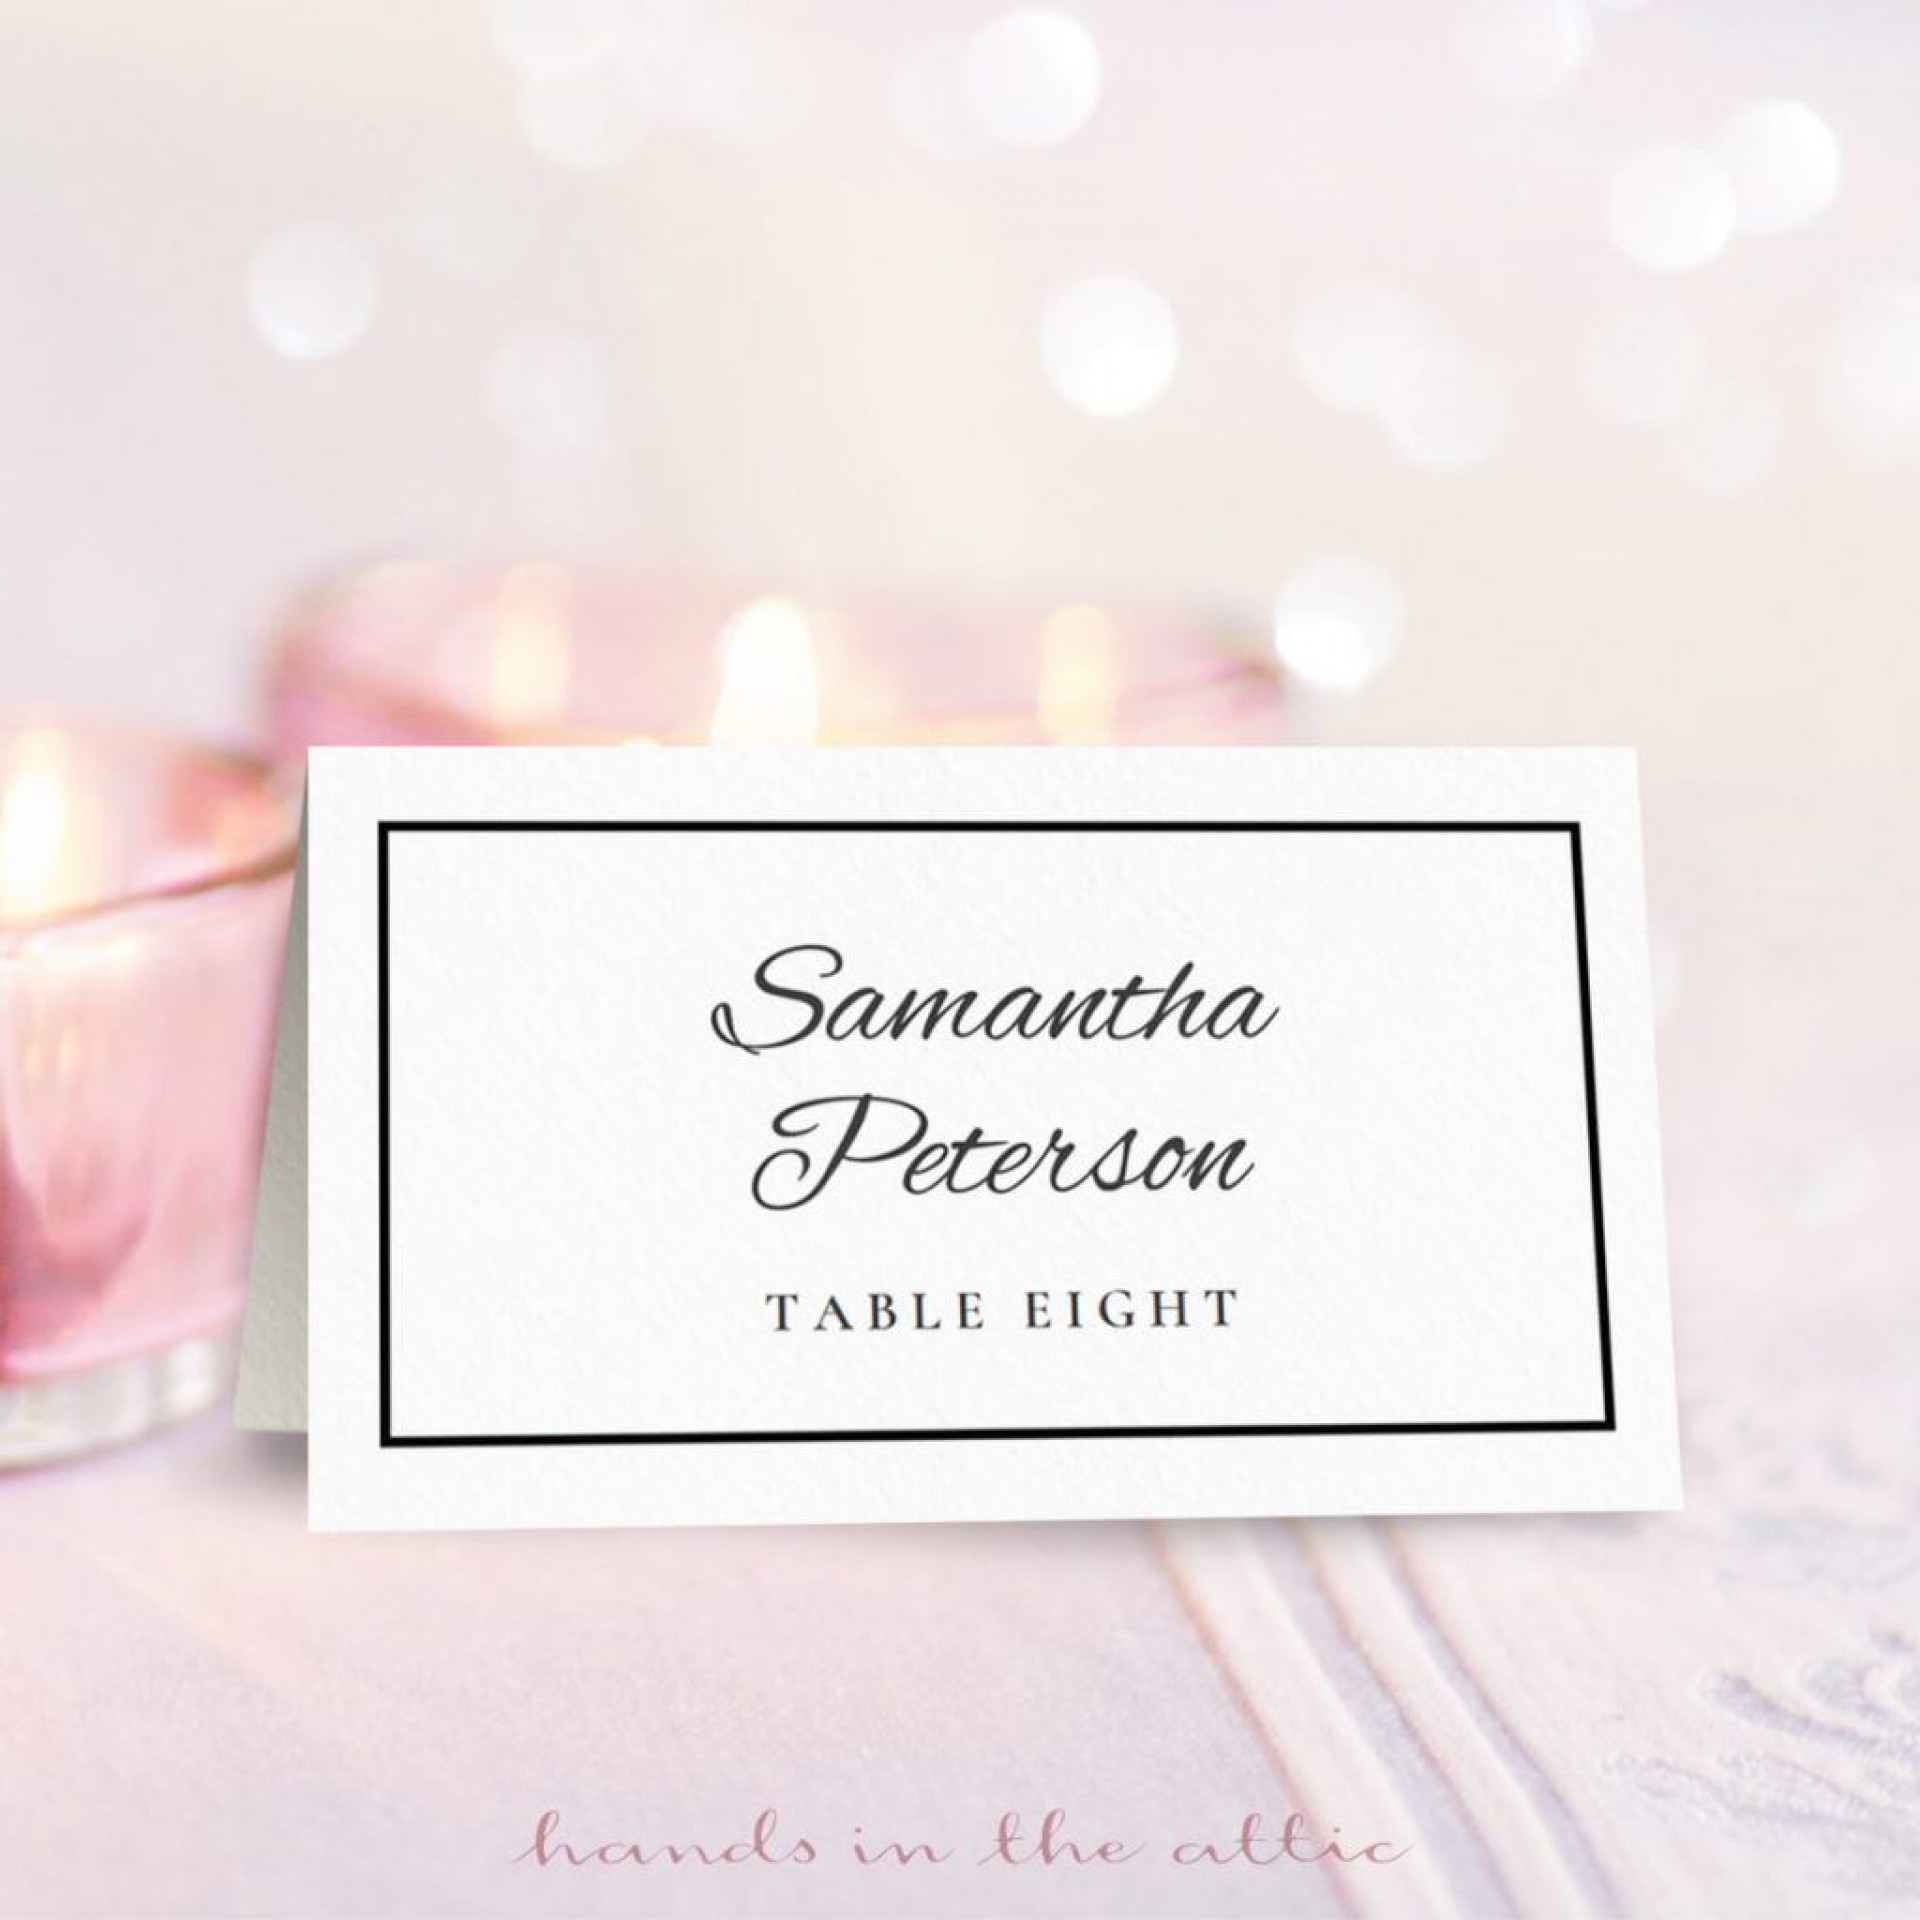 004 Surprising Free Place Card Template Picture  Wedding Download Christma Name Word1920